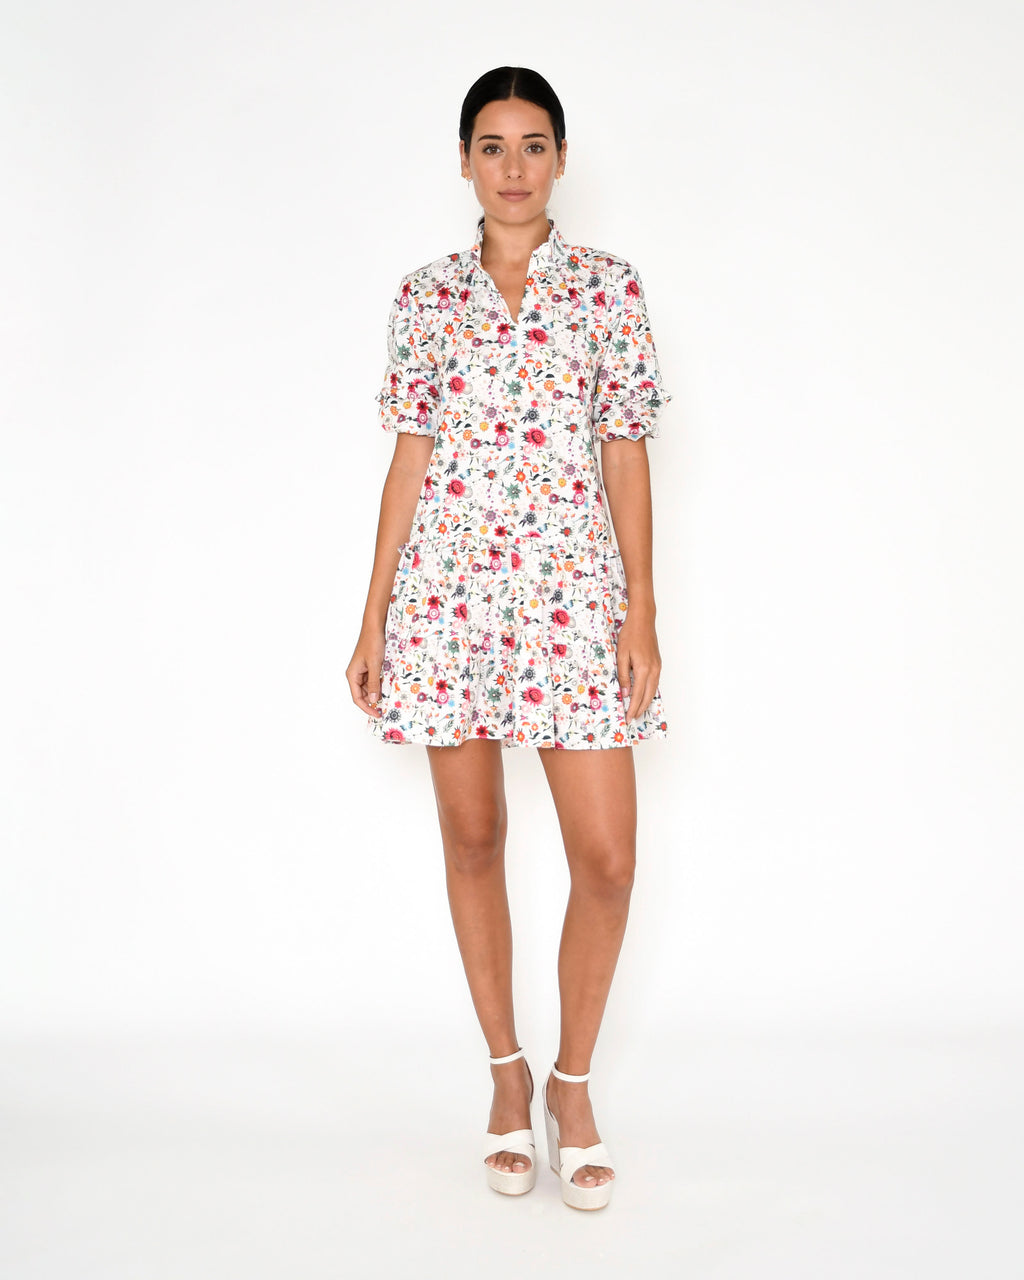 CD18988 - BERRY BOTANICAL RUFFLE MINI DRESS - dresses - short - This mini t-shirt dress is printed in our new berry botanical print and features a polo collar, puffed sleeves and ruffle details. Add 1 line break Stylist Tip: Wear with white sneakers.